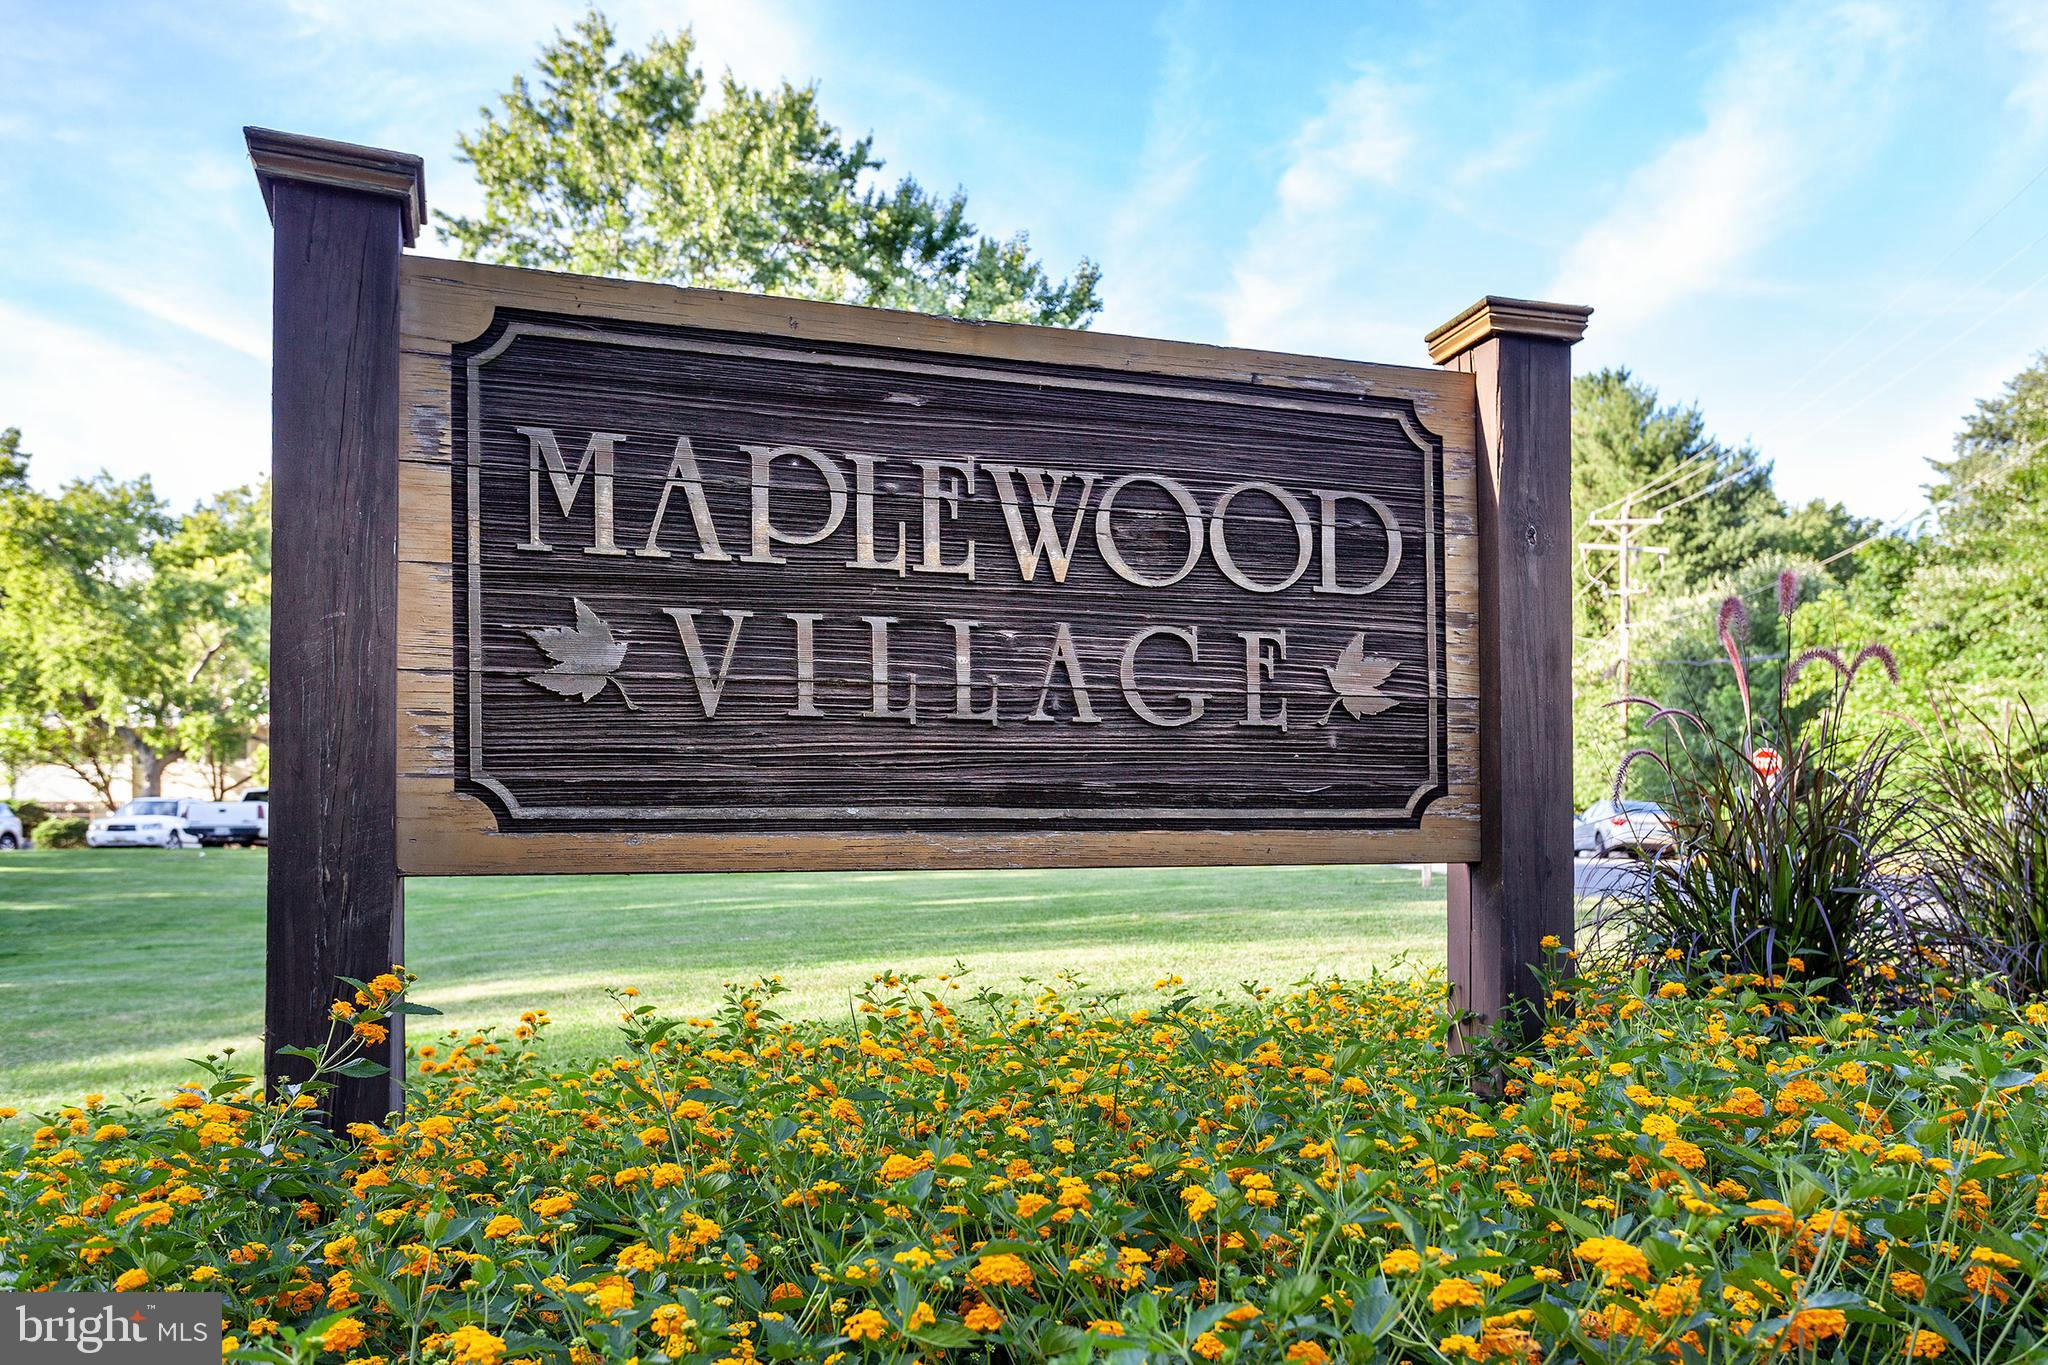 Back In the Market! The only 3 Levels Townhouse for sale in this community in the past 12 months, with 3 Bedrooms and 2 Full Bathrooms and 1/2 Bath. Finished Walkout Basement with high rental potential.